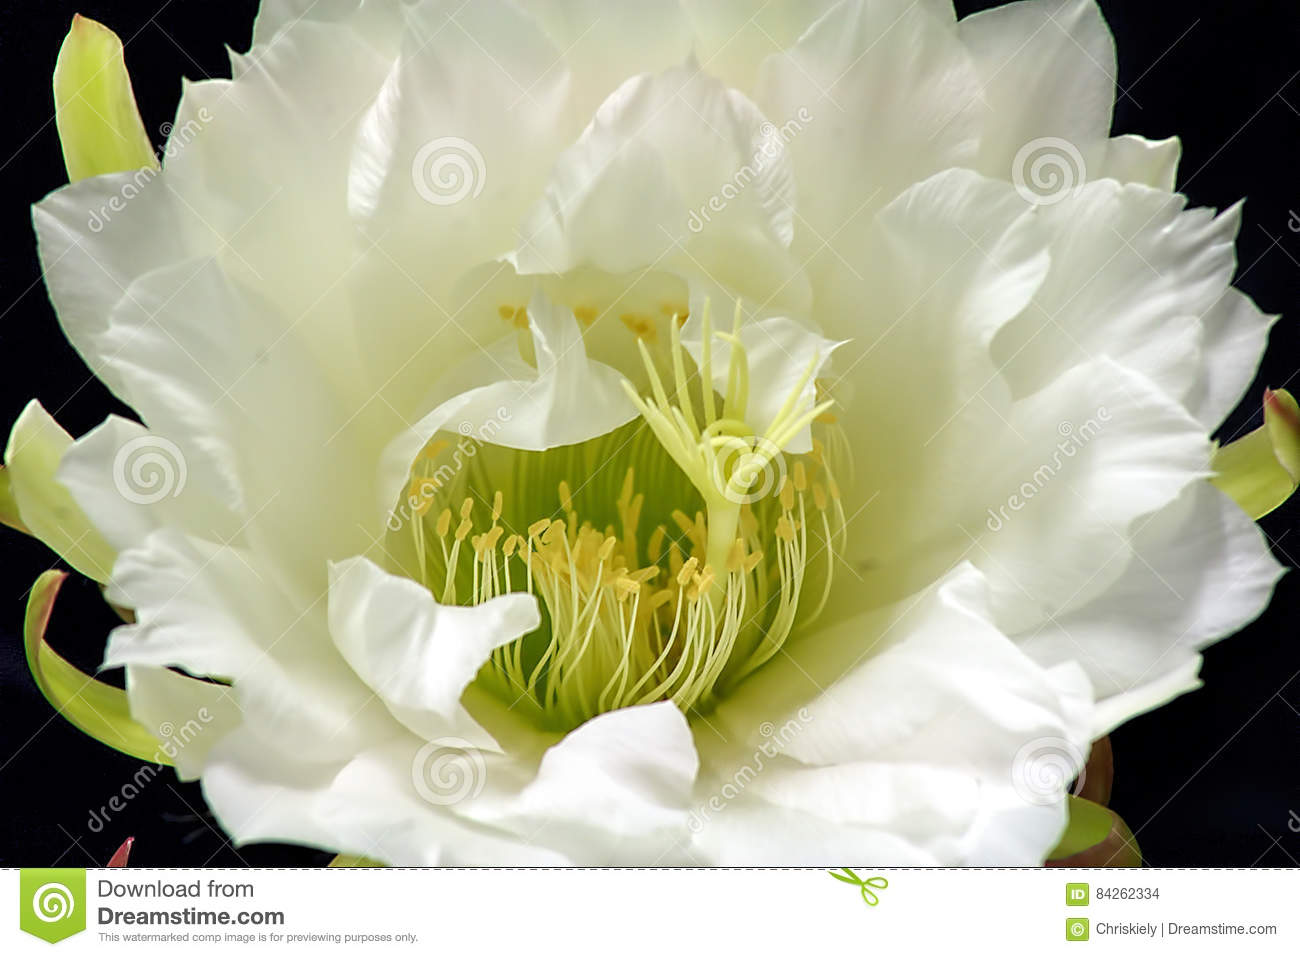 Queen of the night cactus flowers stock photo image of princess queen of the night cactus flowers mightylinksfo